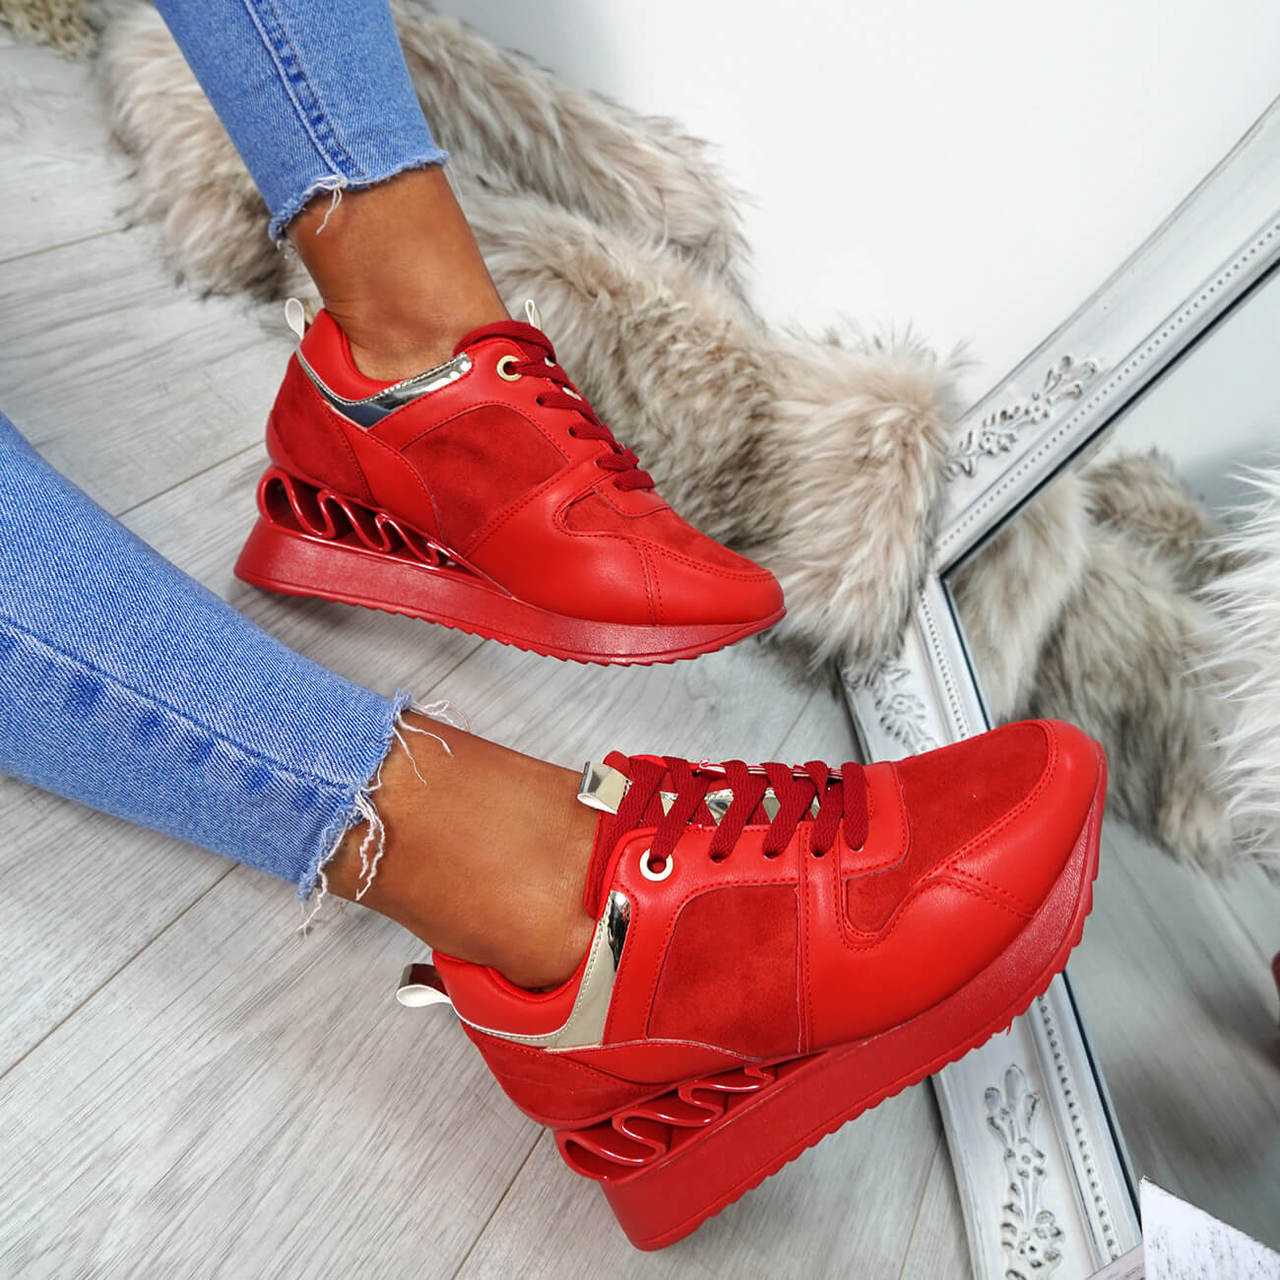 341294bbd758 Womens Ladies Lace Up Chunky Trainers Wedge Fashion Heel Sneakers Shoes Size